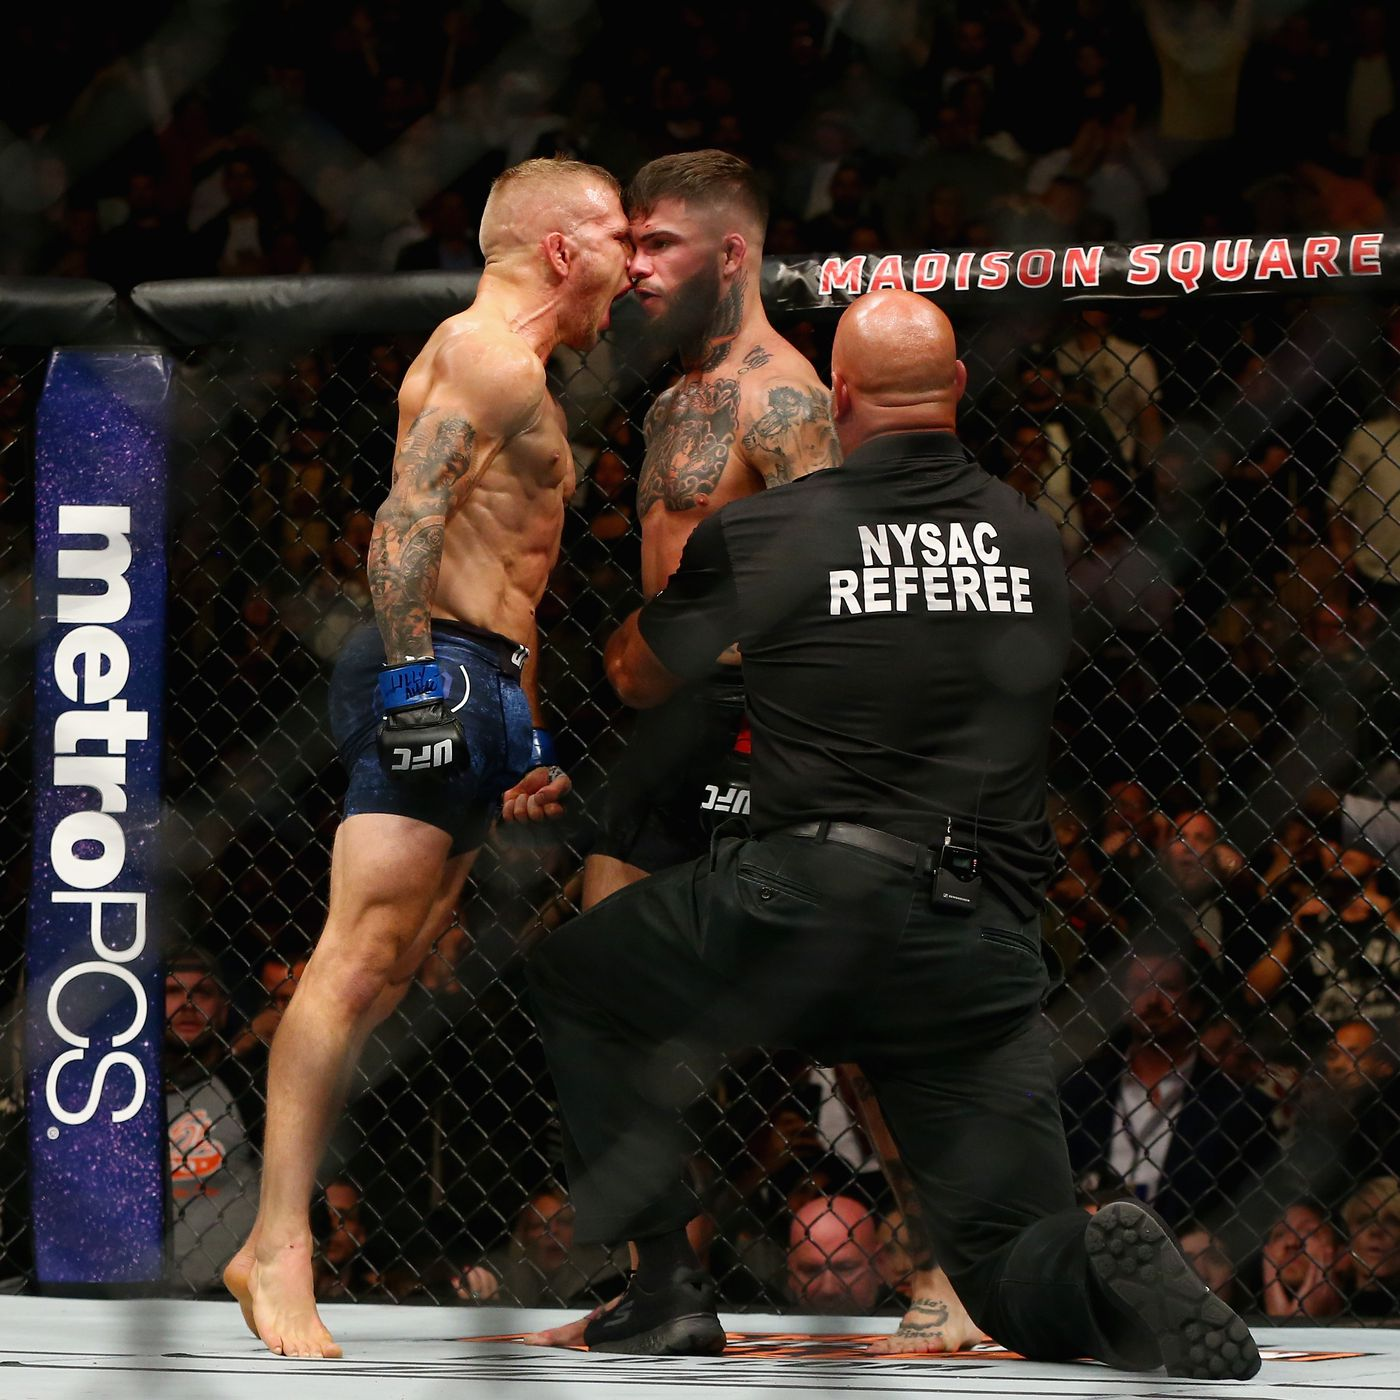 Report: TJ Dillashaw vs Cody Garbrandt rematch booked for UFC 227 on Aug. 4 in Los Angeles - MMAmania.com